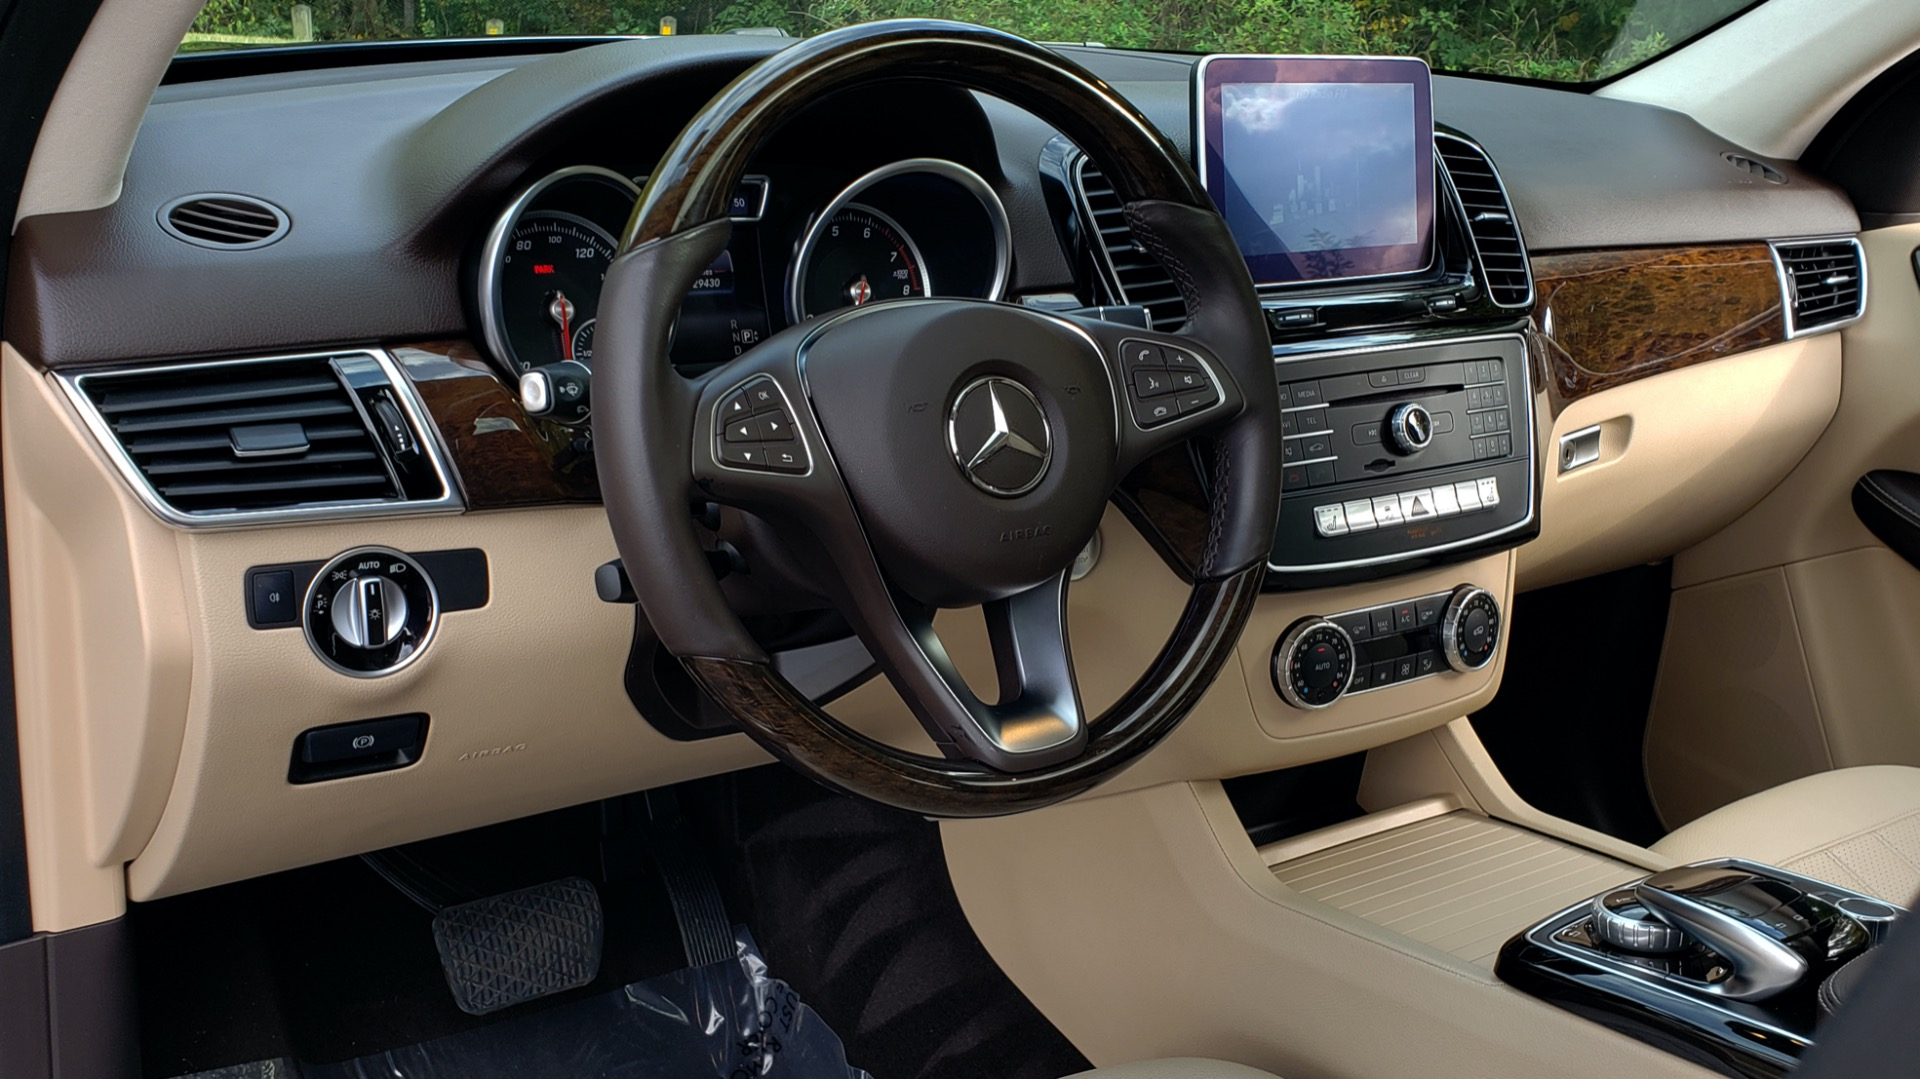 Used 2016 Mercedes-Benz GLE 350 PREMIUM / NAV / SUNROOF / BACK-UP CAMERA / LANE TRACKING for sale Sold at Formula Imports in Charlotte NC 28227 44